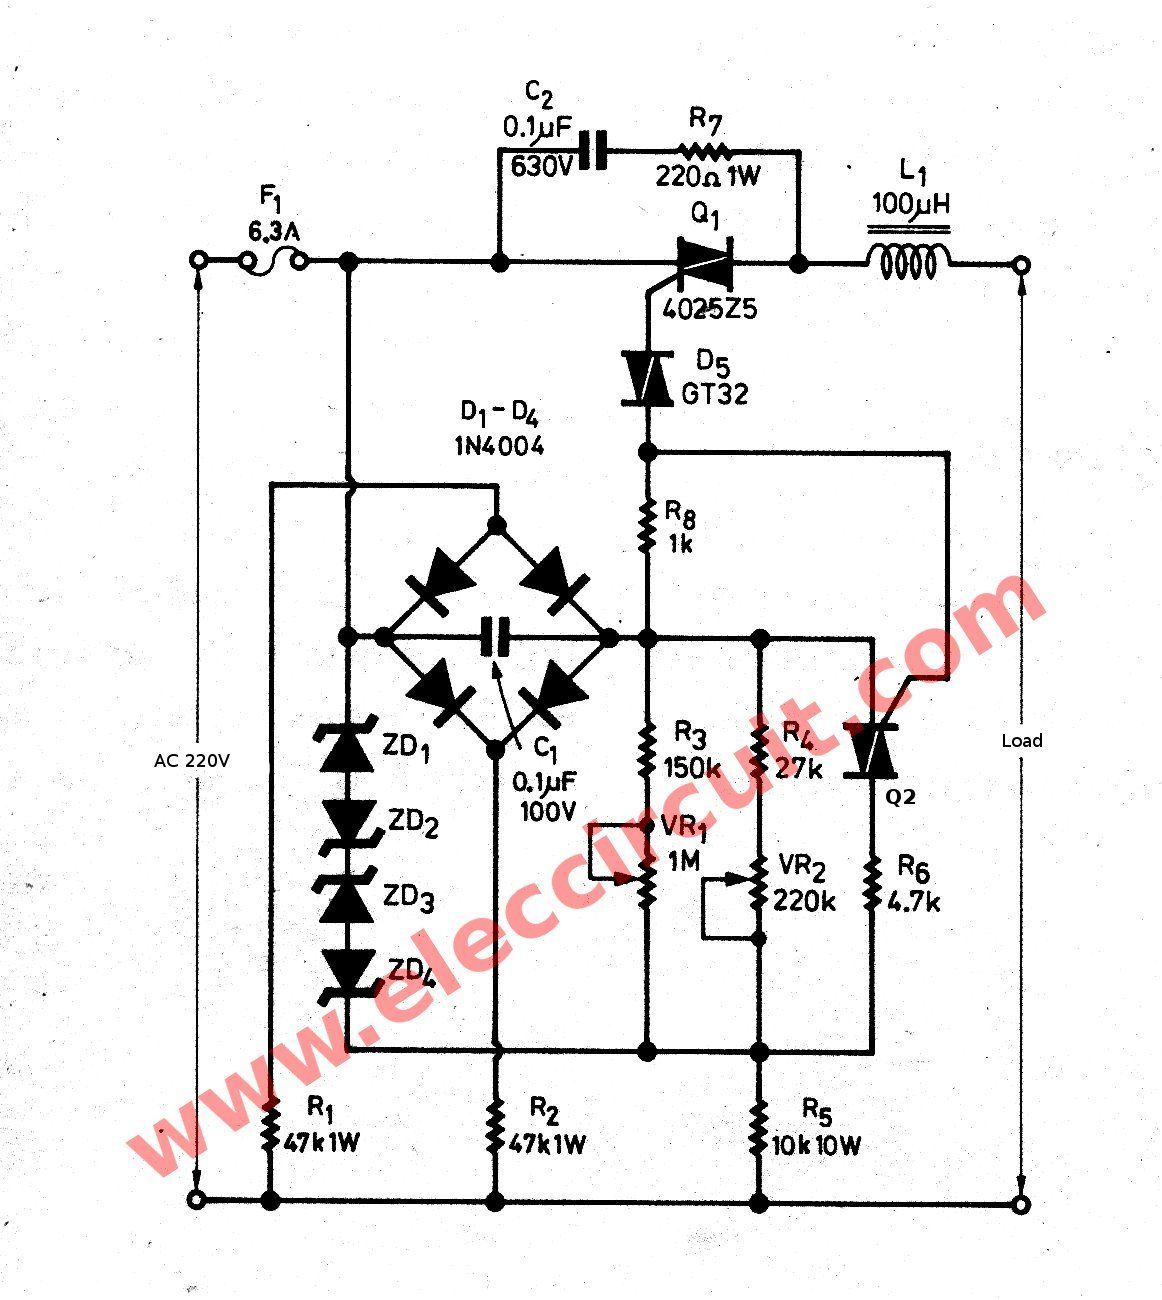 Watts Dimmer For Inductor Load